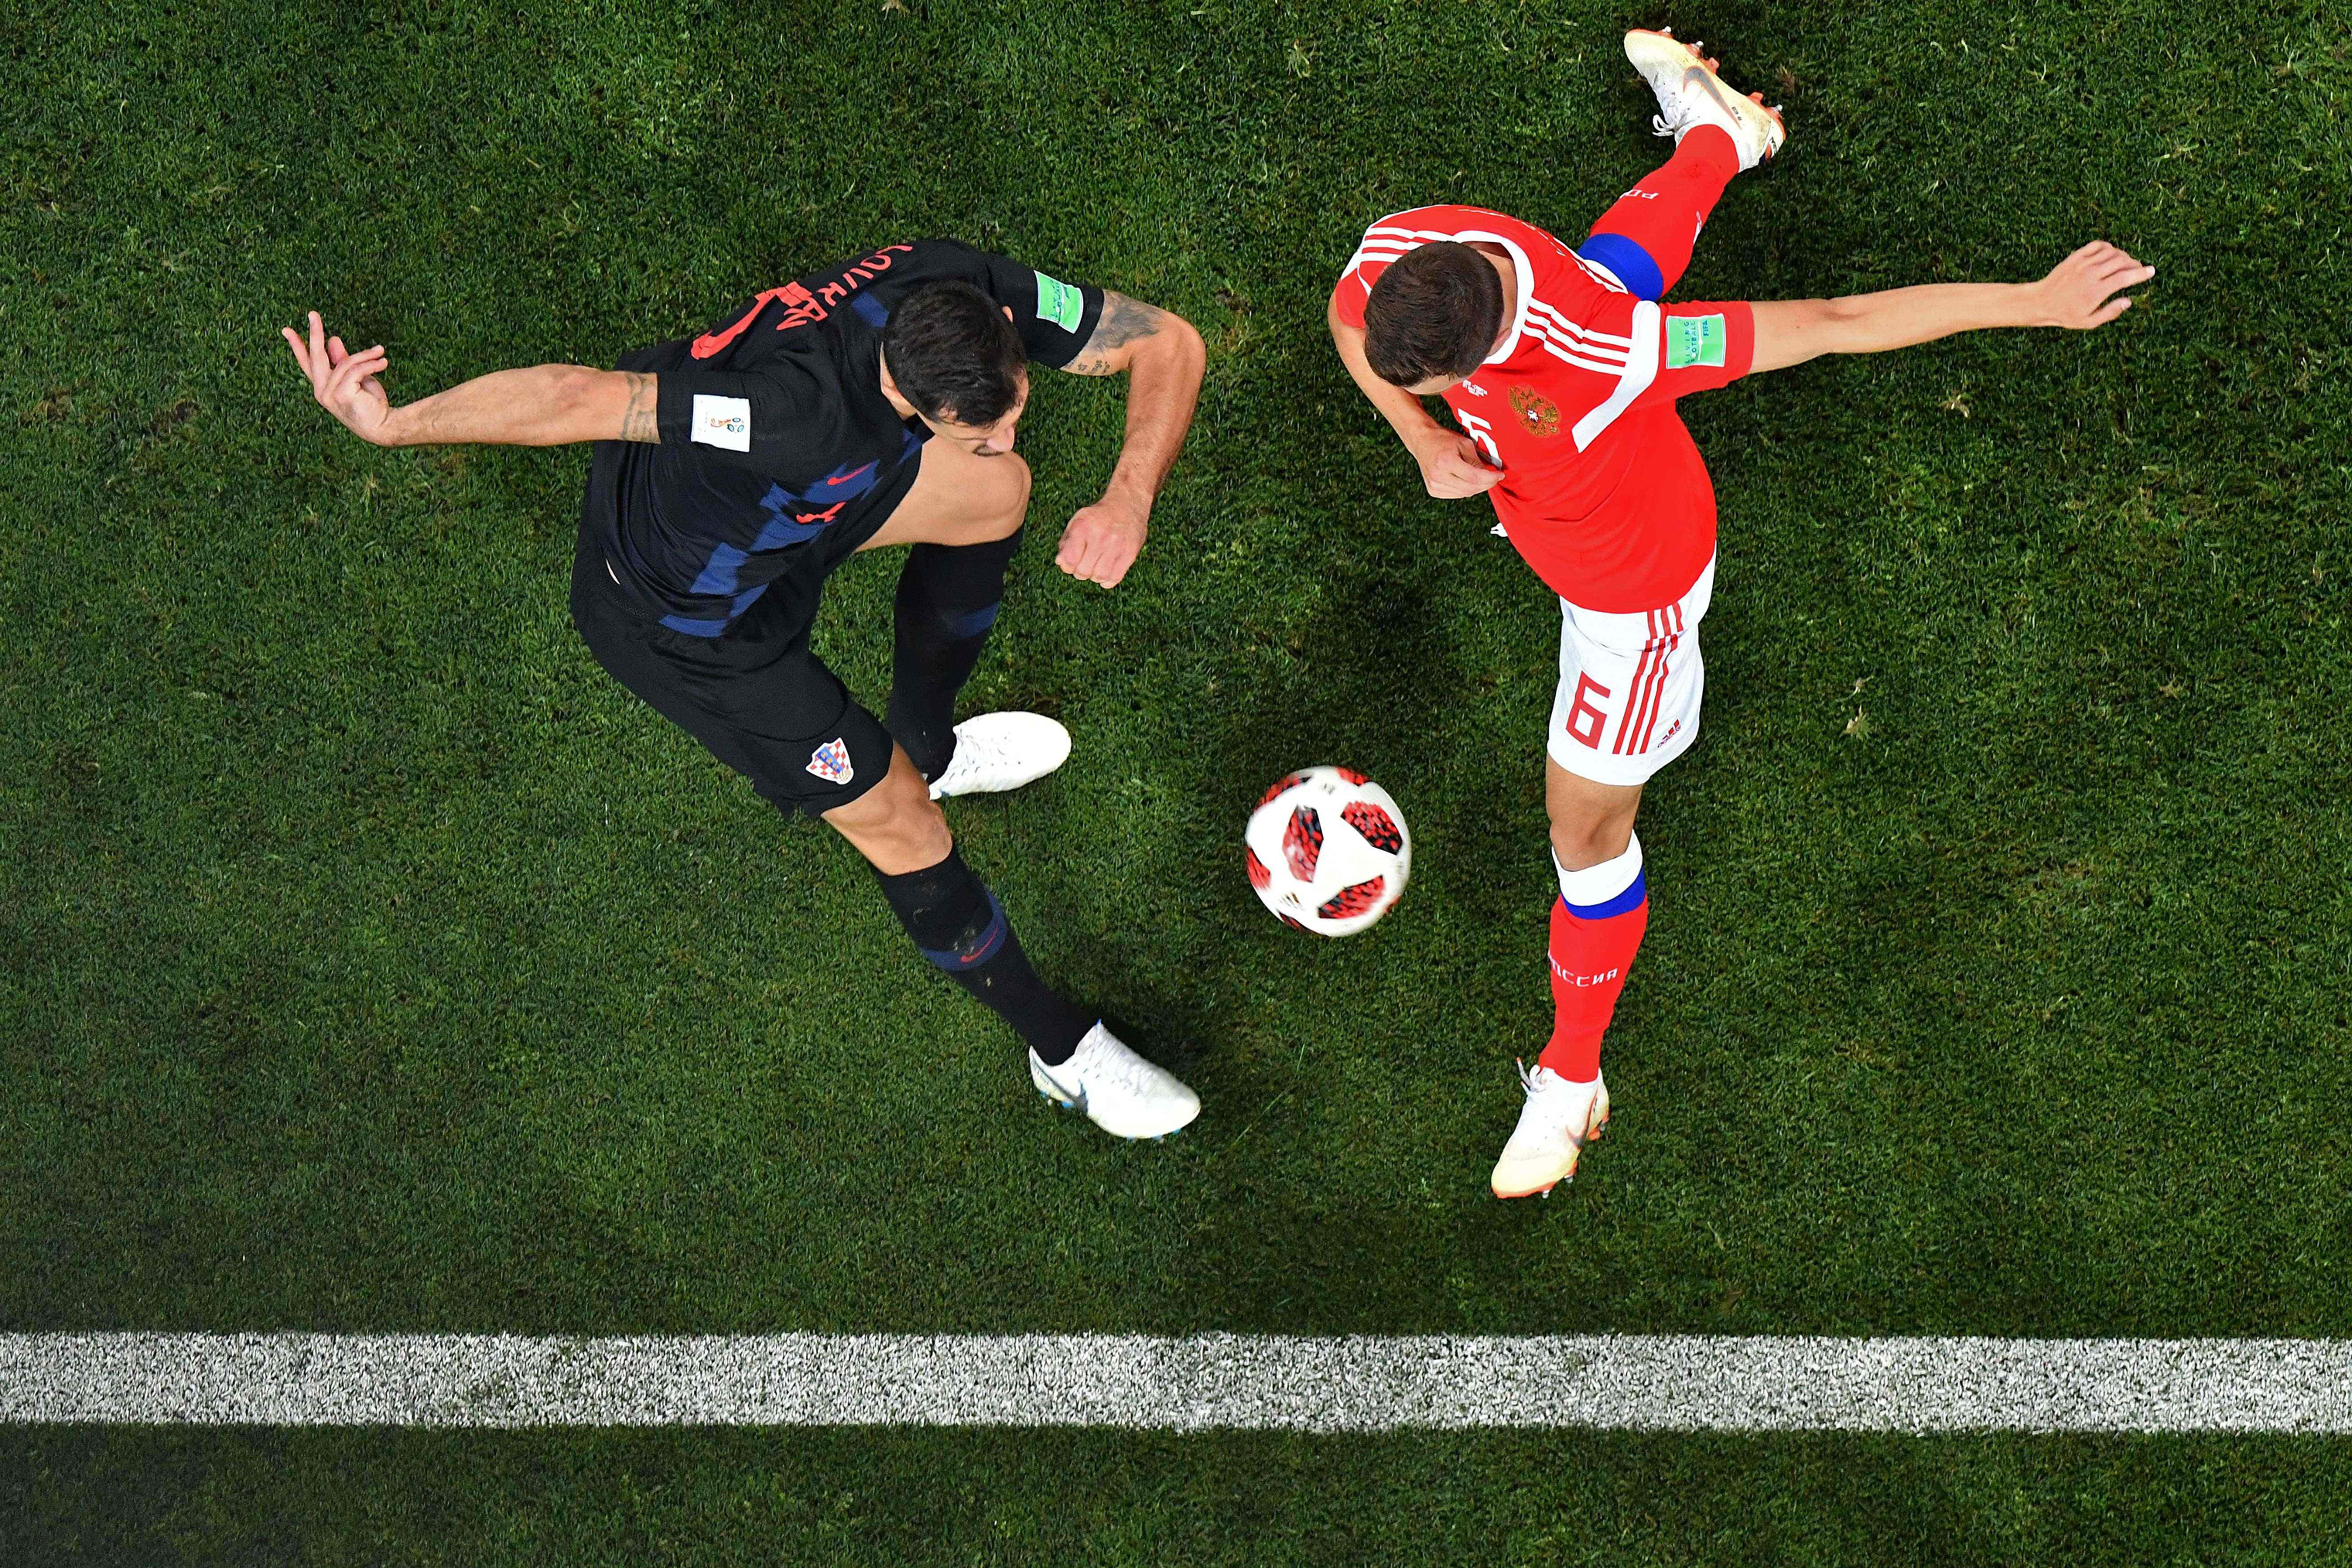 Croatia's defender Dejan Lovren vies with Russia's midfielder Denis Cheryshev during the quarter-final football match between Russia and Croatia on July 7, 2018.